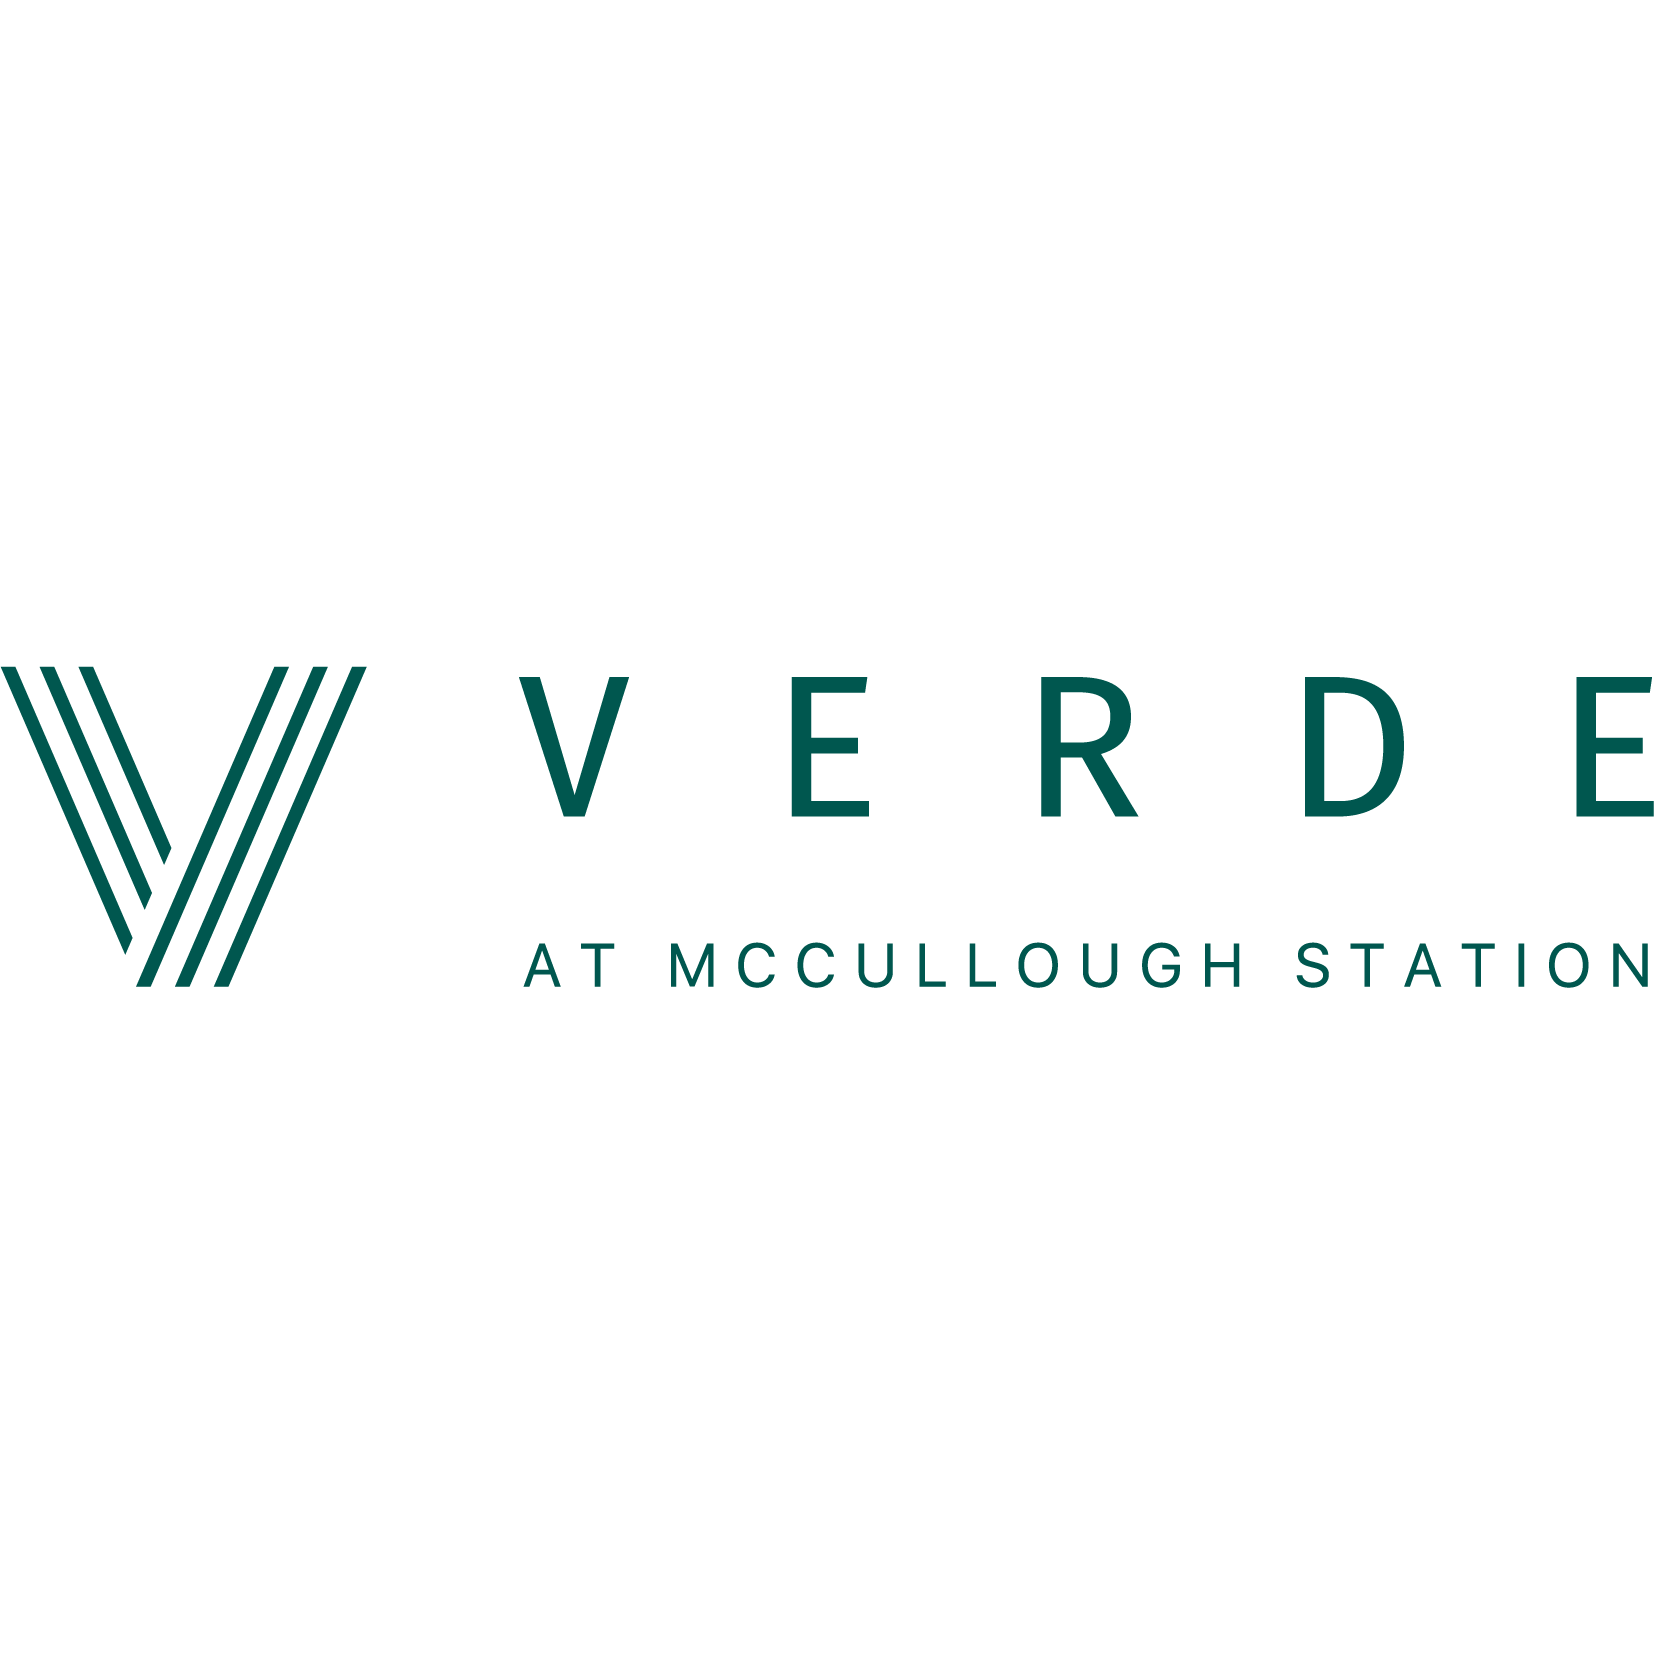 Verde At Mccullough Station | Financial Advisor in Charlotte,North Carolina